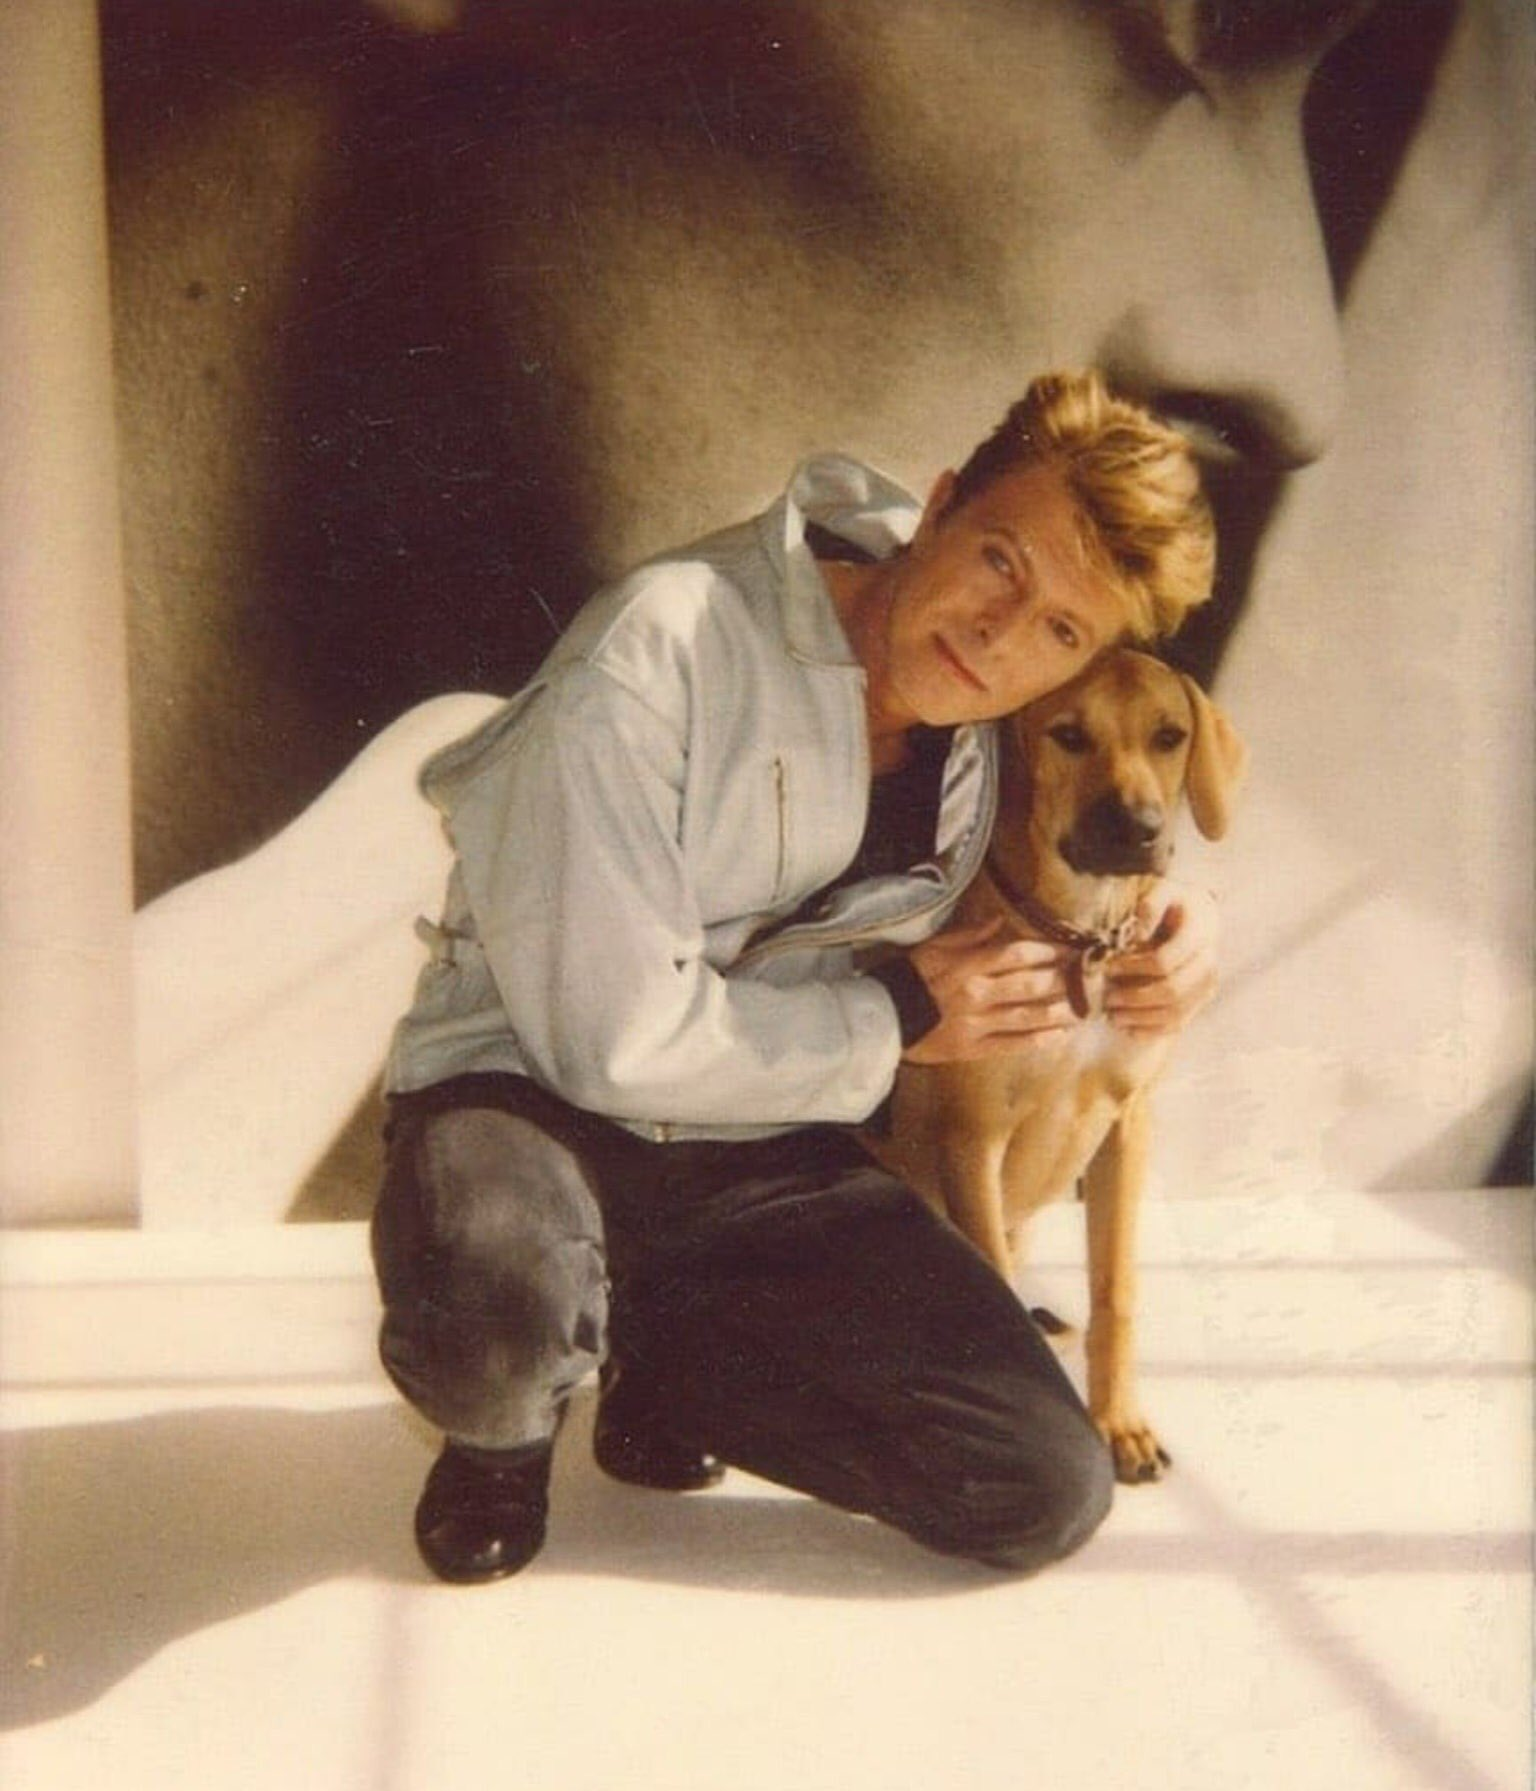 David Bowie and dog, Herb Ritts, December 1989.jpg